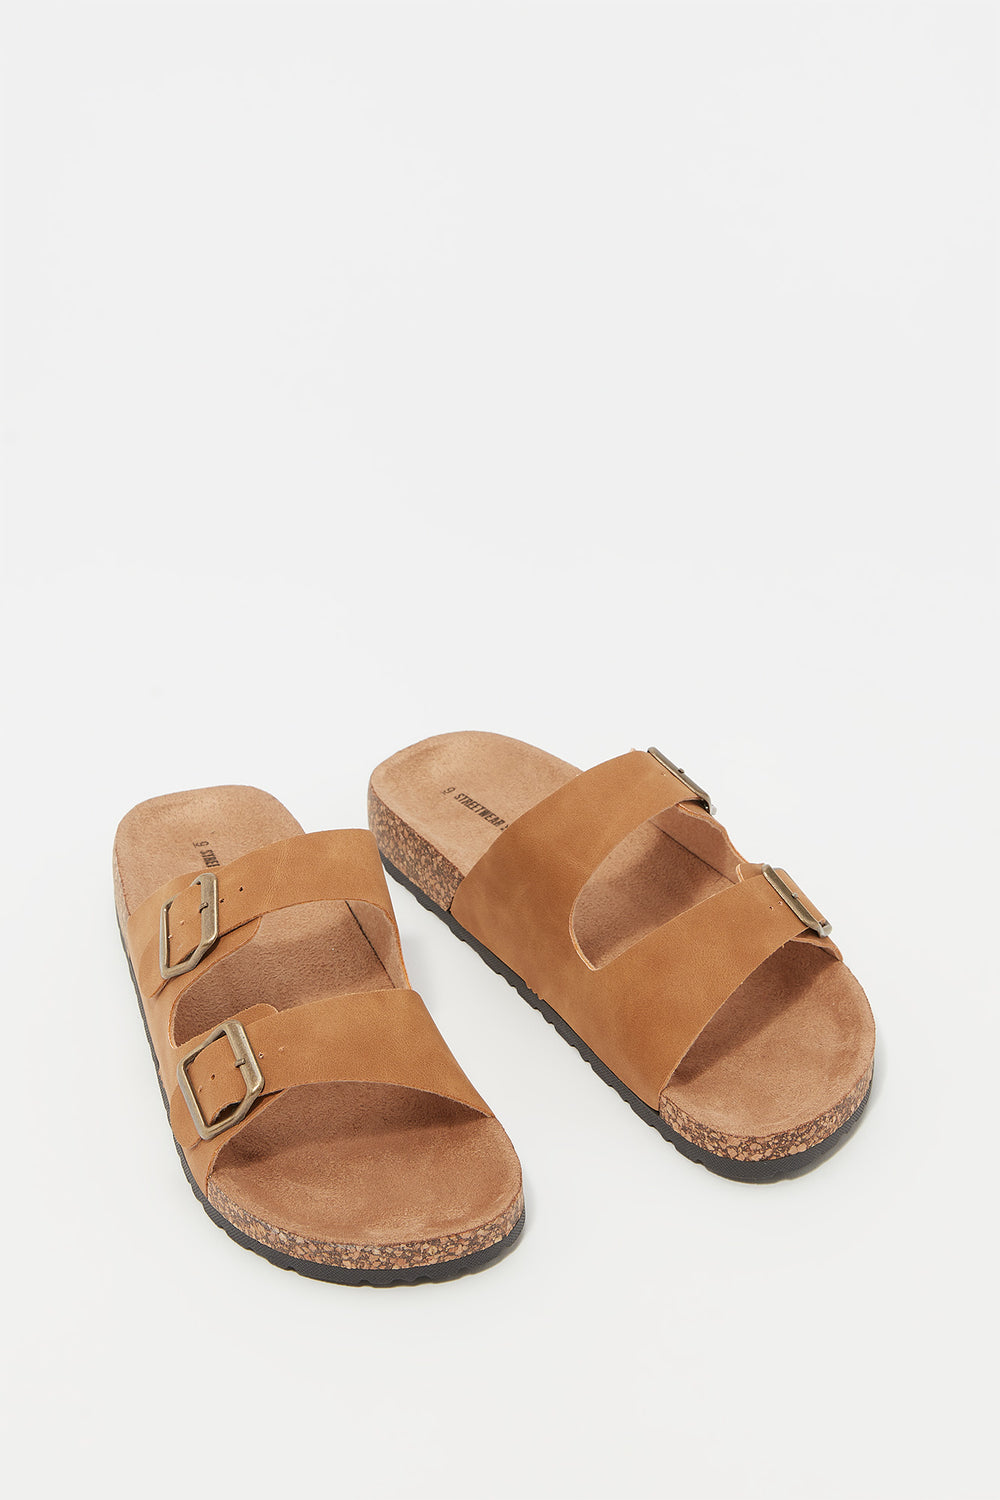 Faux-Suede Double Strap Cork Slip-On Sandal Tan